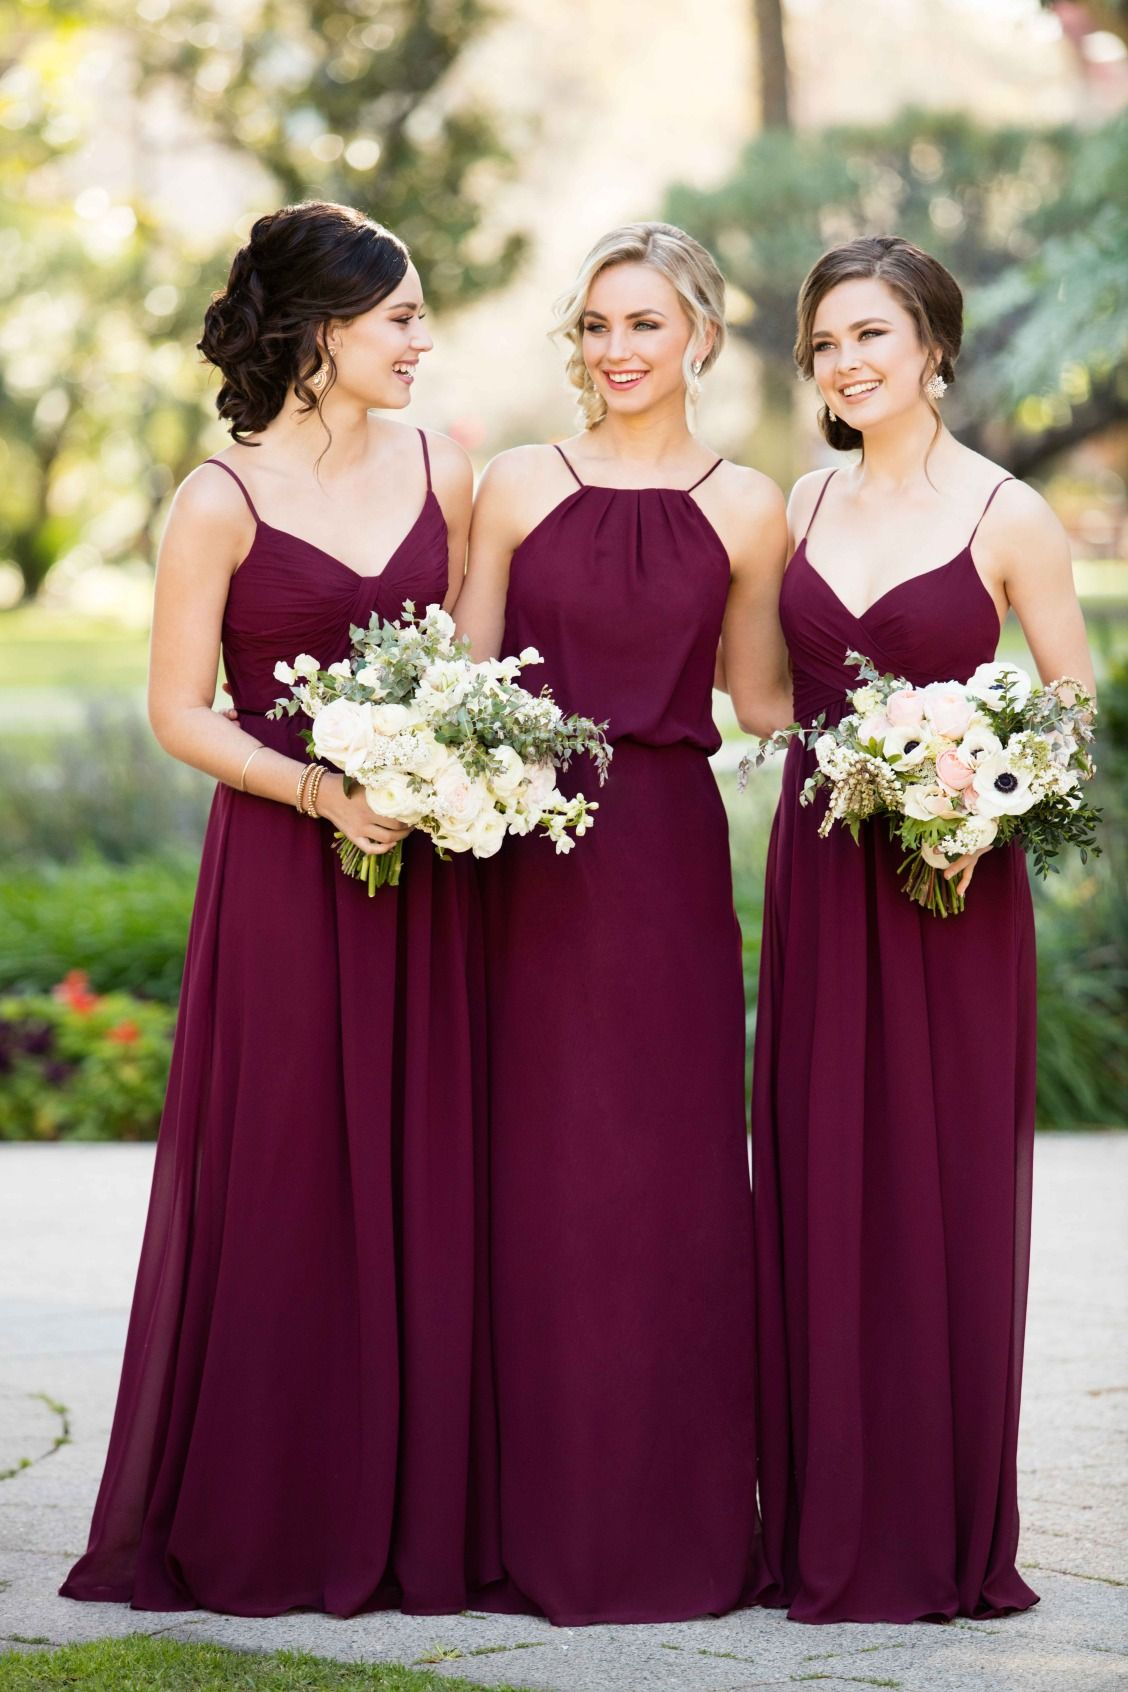 e317a3e71f8fa Burgundy Bridesmaids Dress for a mix and match bridal party!